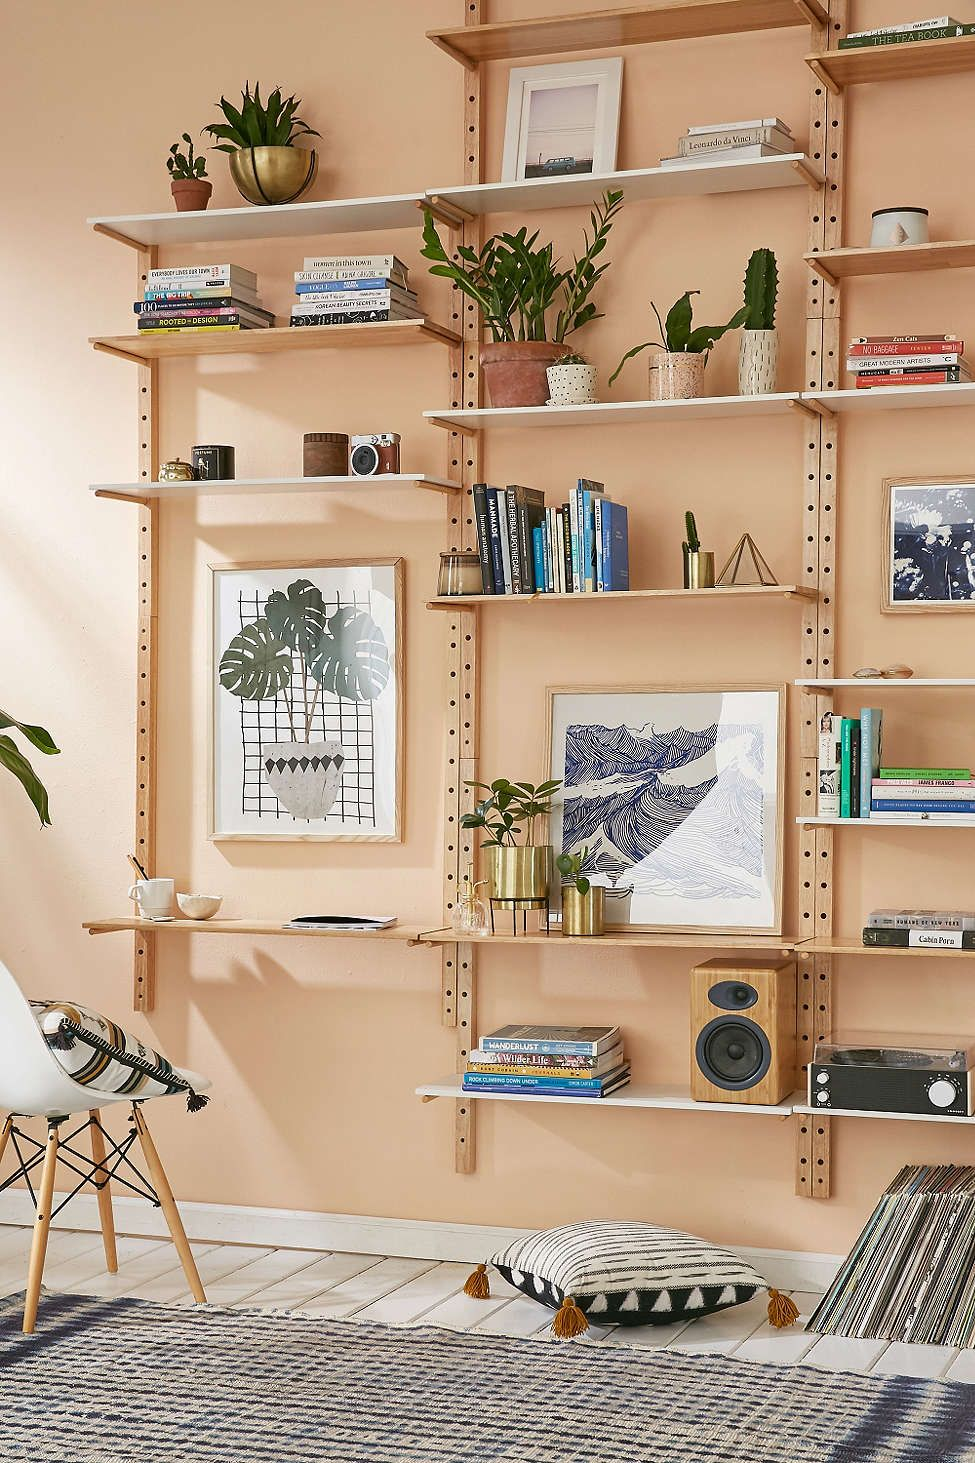 Uo Home Lately Wall Shelving Units Cozy Apartment Decor Unique